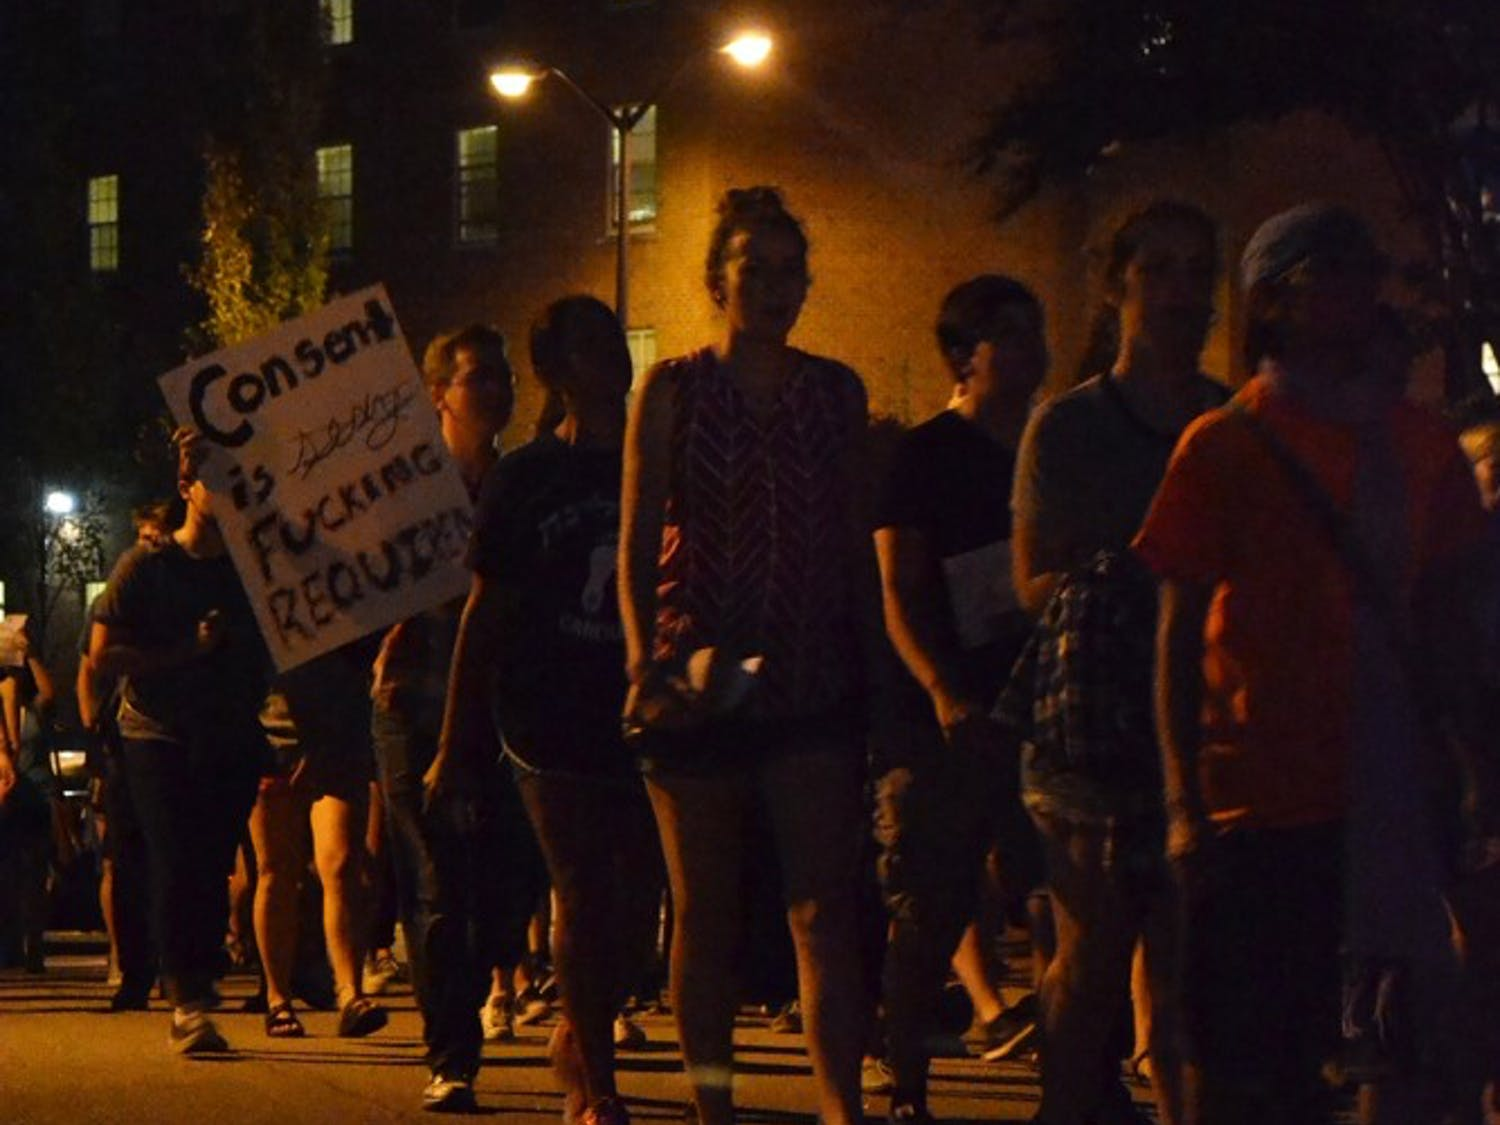 Protesters chant angrily in protest of Title IX on the way to the Department of Public Health and Safety.